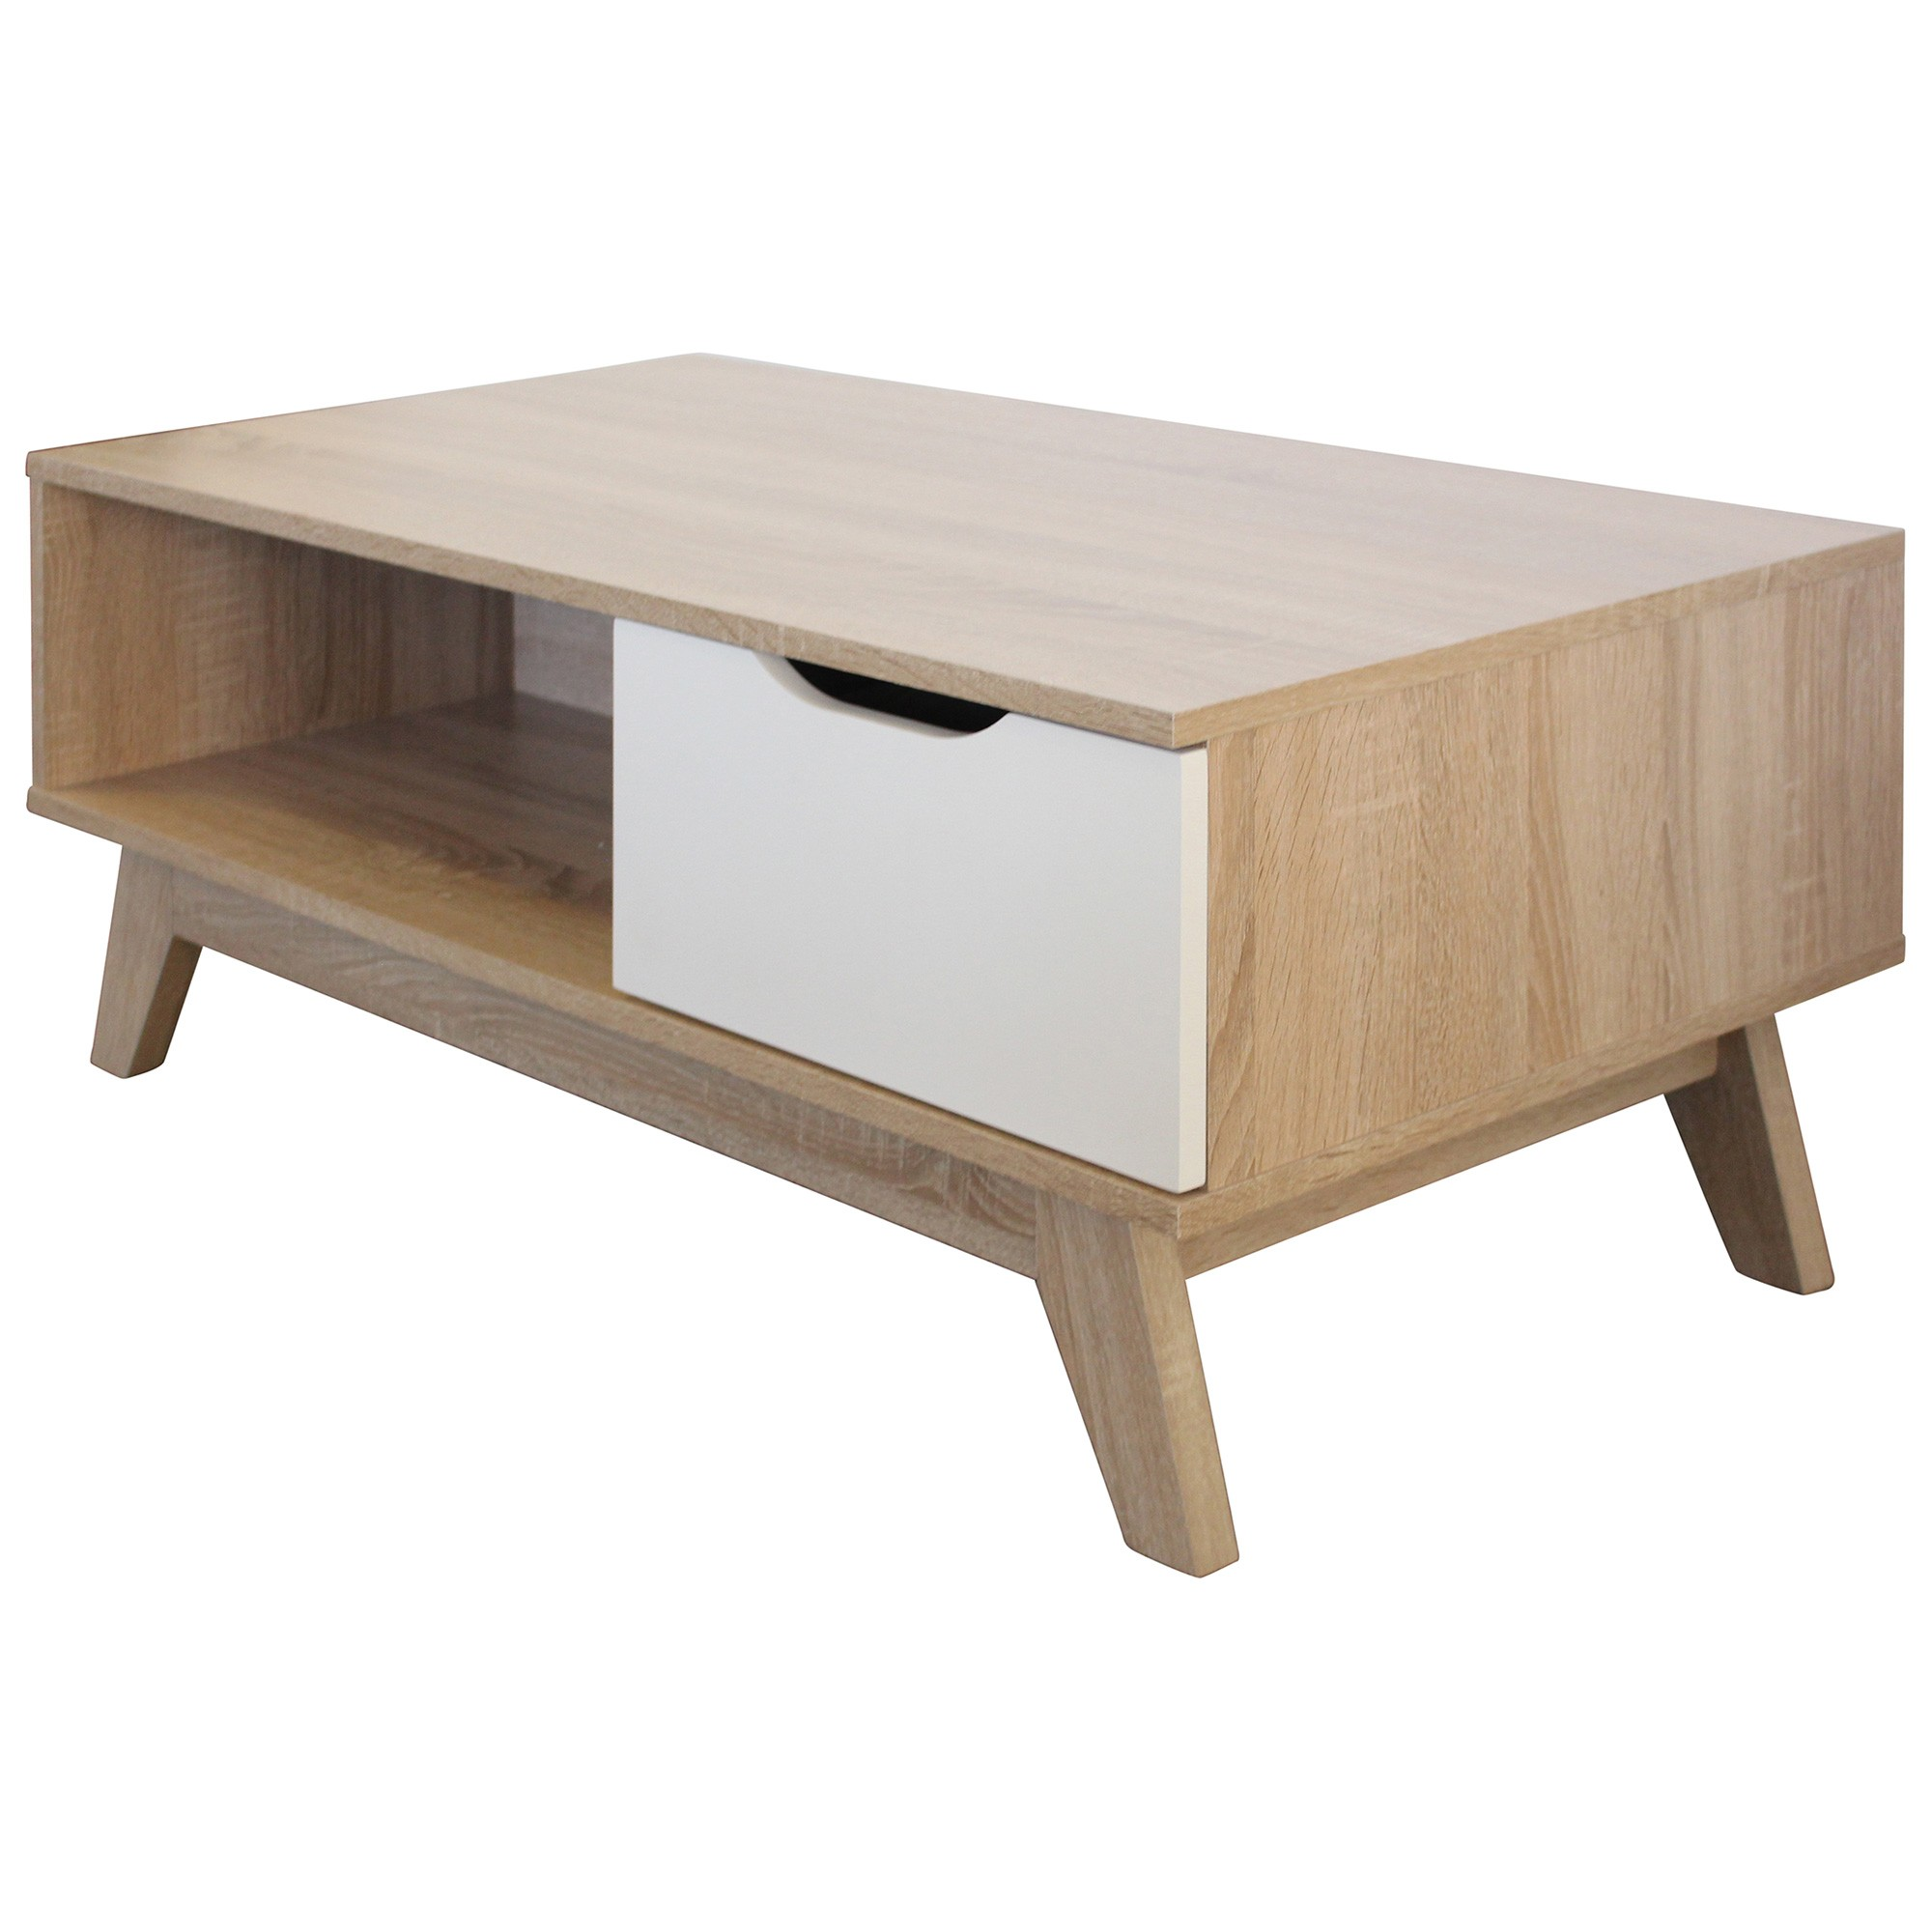 Bergen Wooden Coffee Table, 100cm